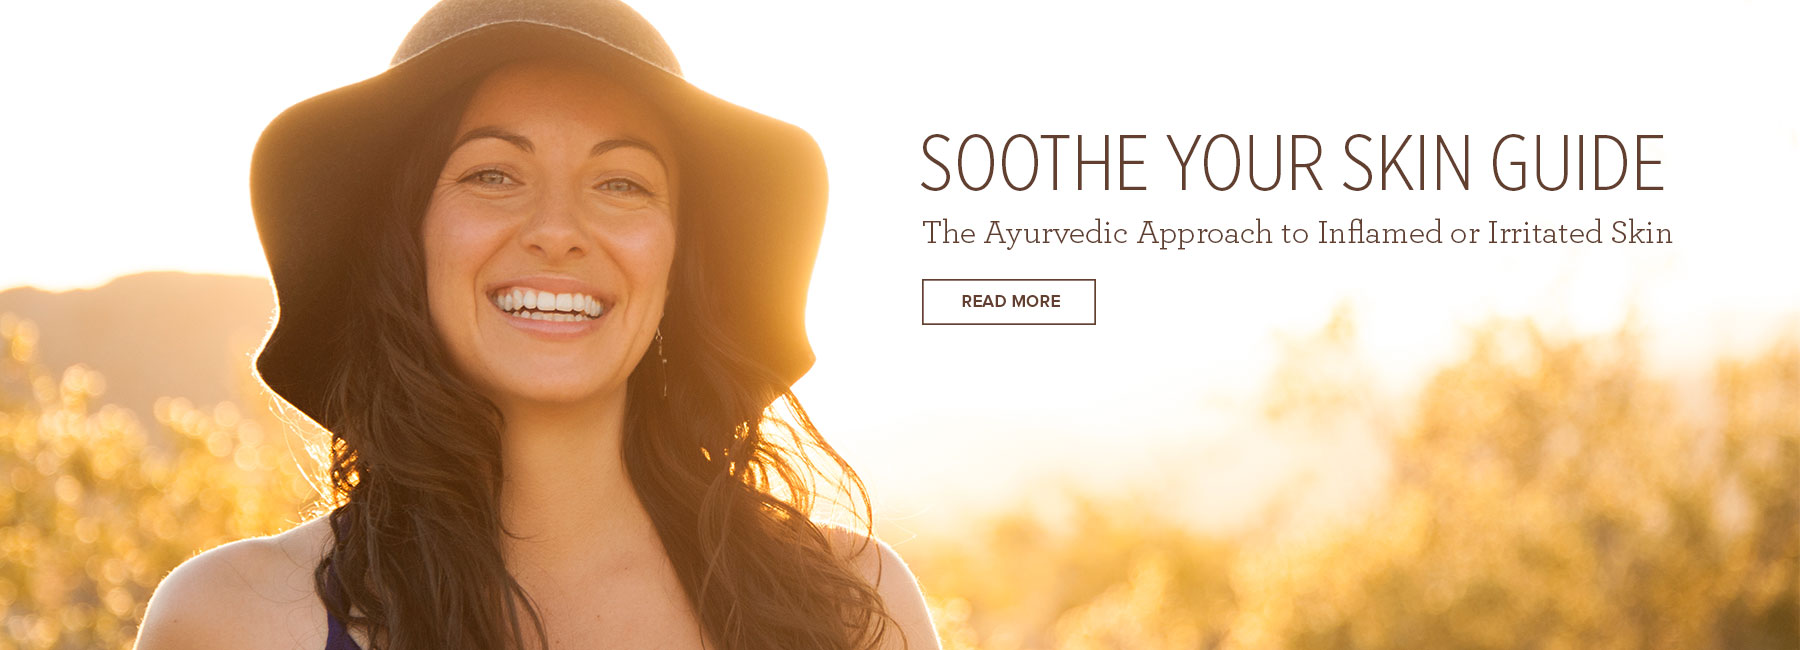 Soothe Your Skin Guide: The Ayurvedic Approach to Inflamed or Irritated Skin